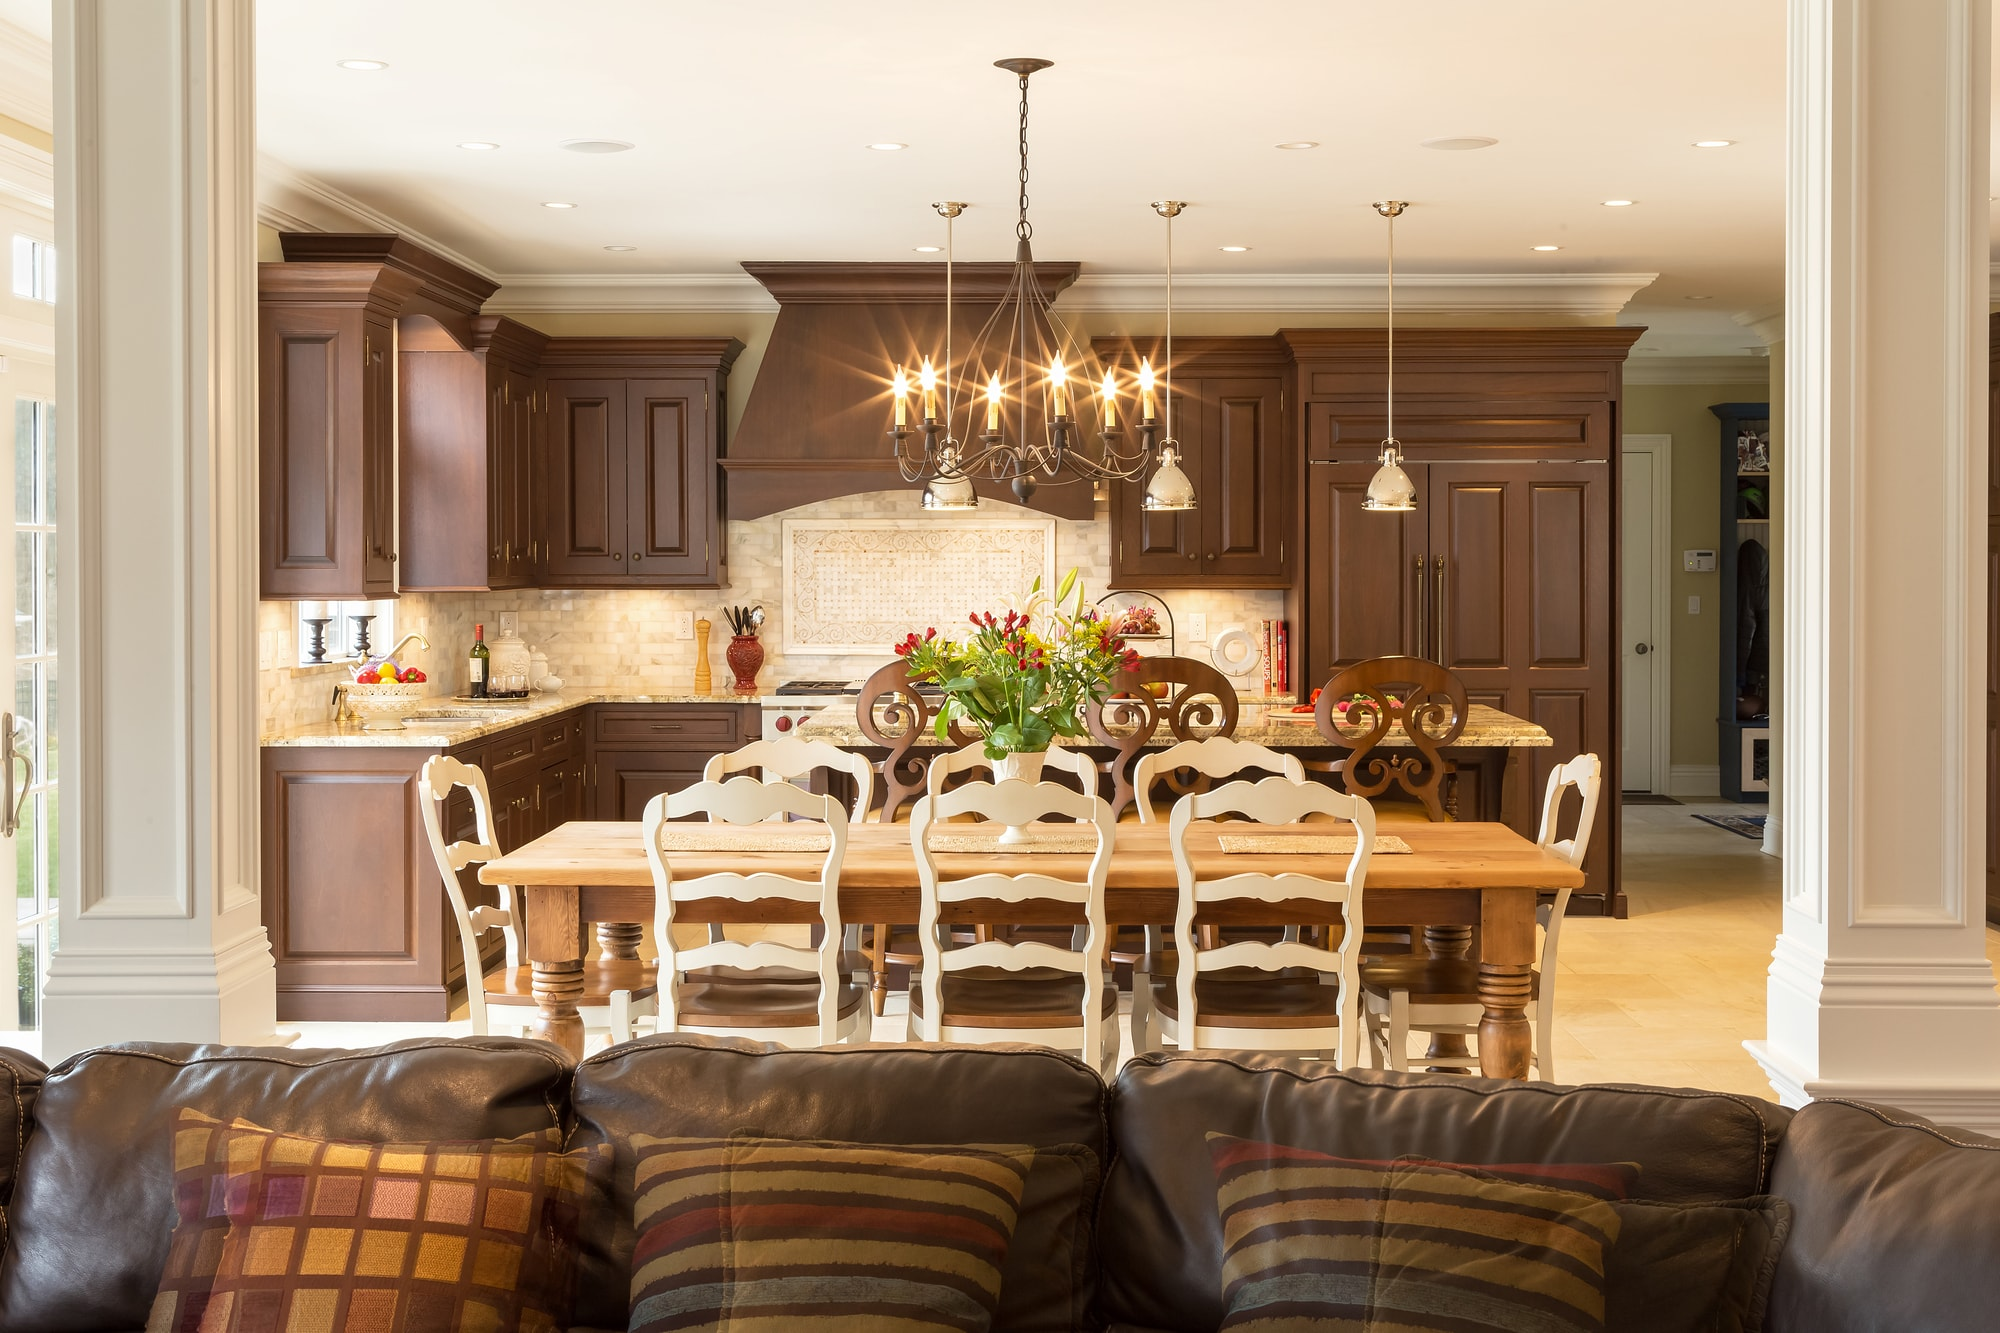 Traditional style kitchen with open plan design